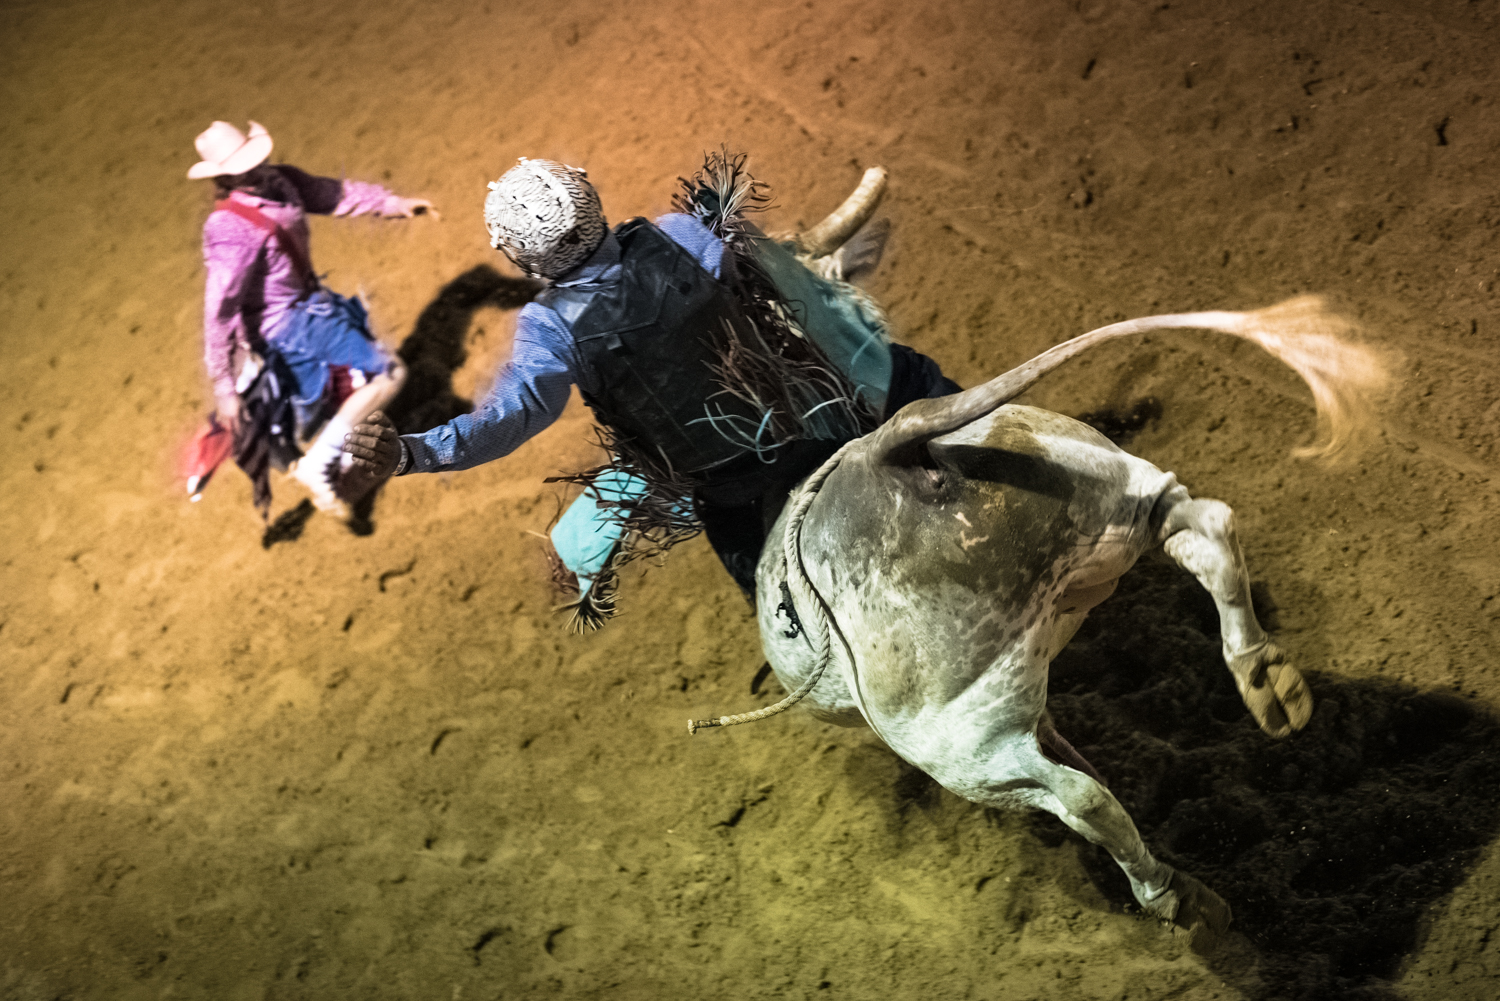 © Ayash Basu. A good bull ride means big cash earnings in one rodeo night, making the risks seemingly worthwhile to riders. Boerne 2018.